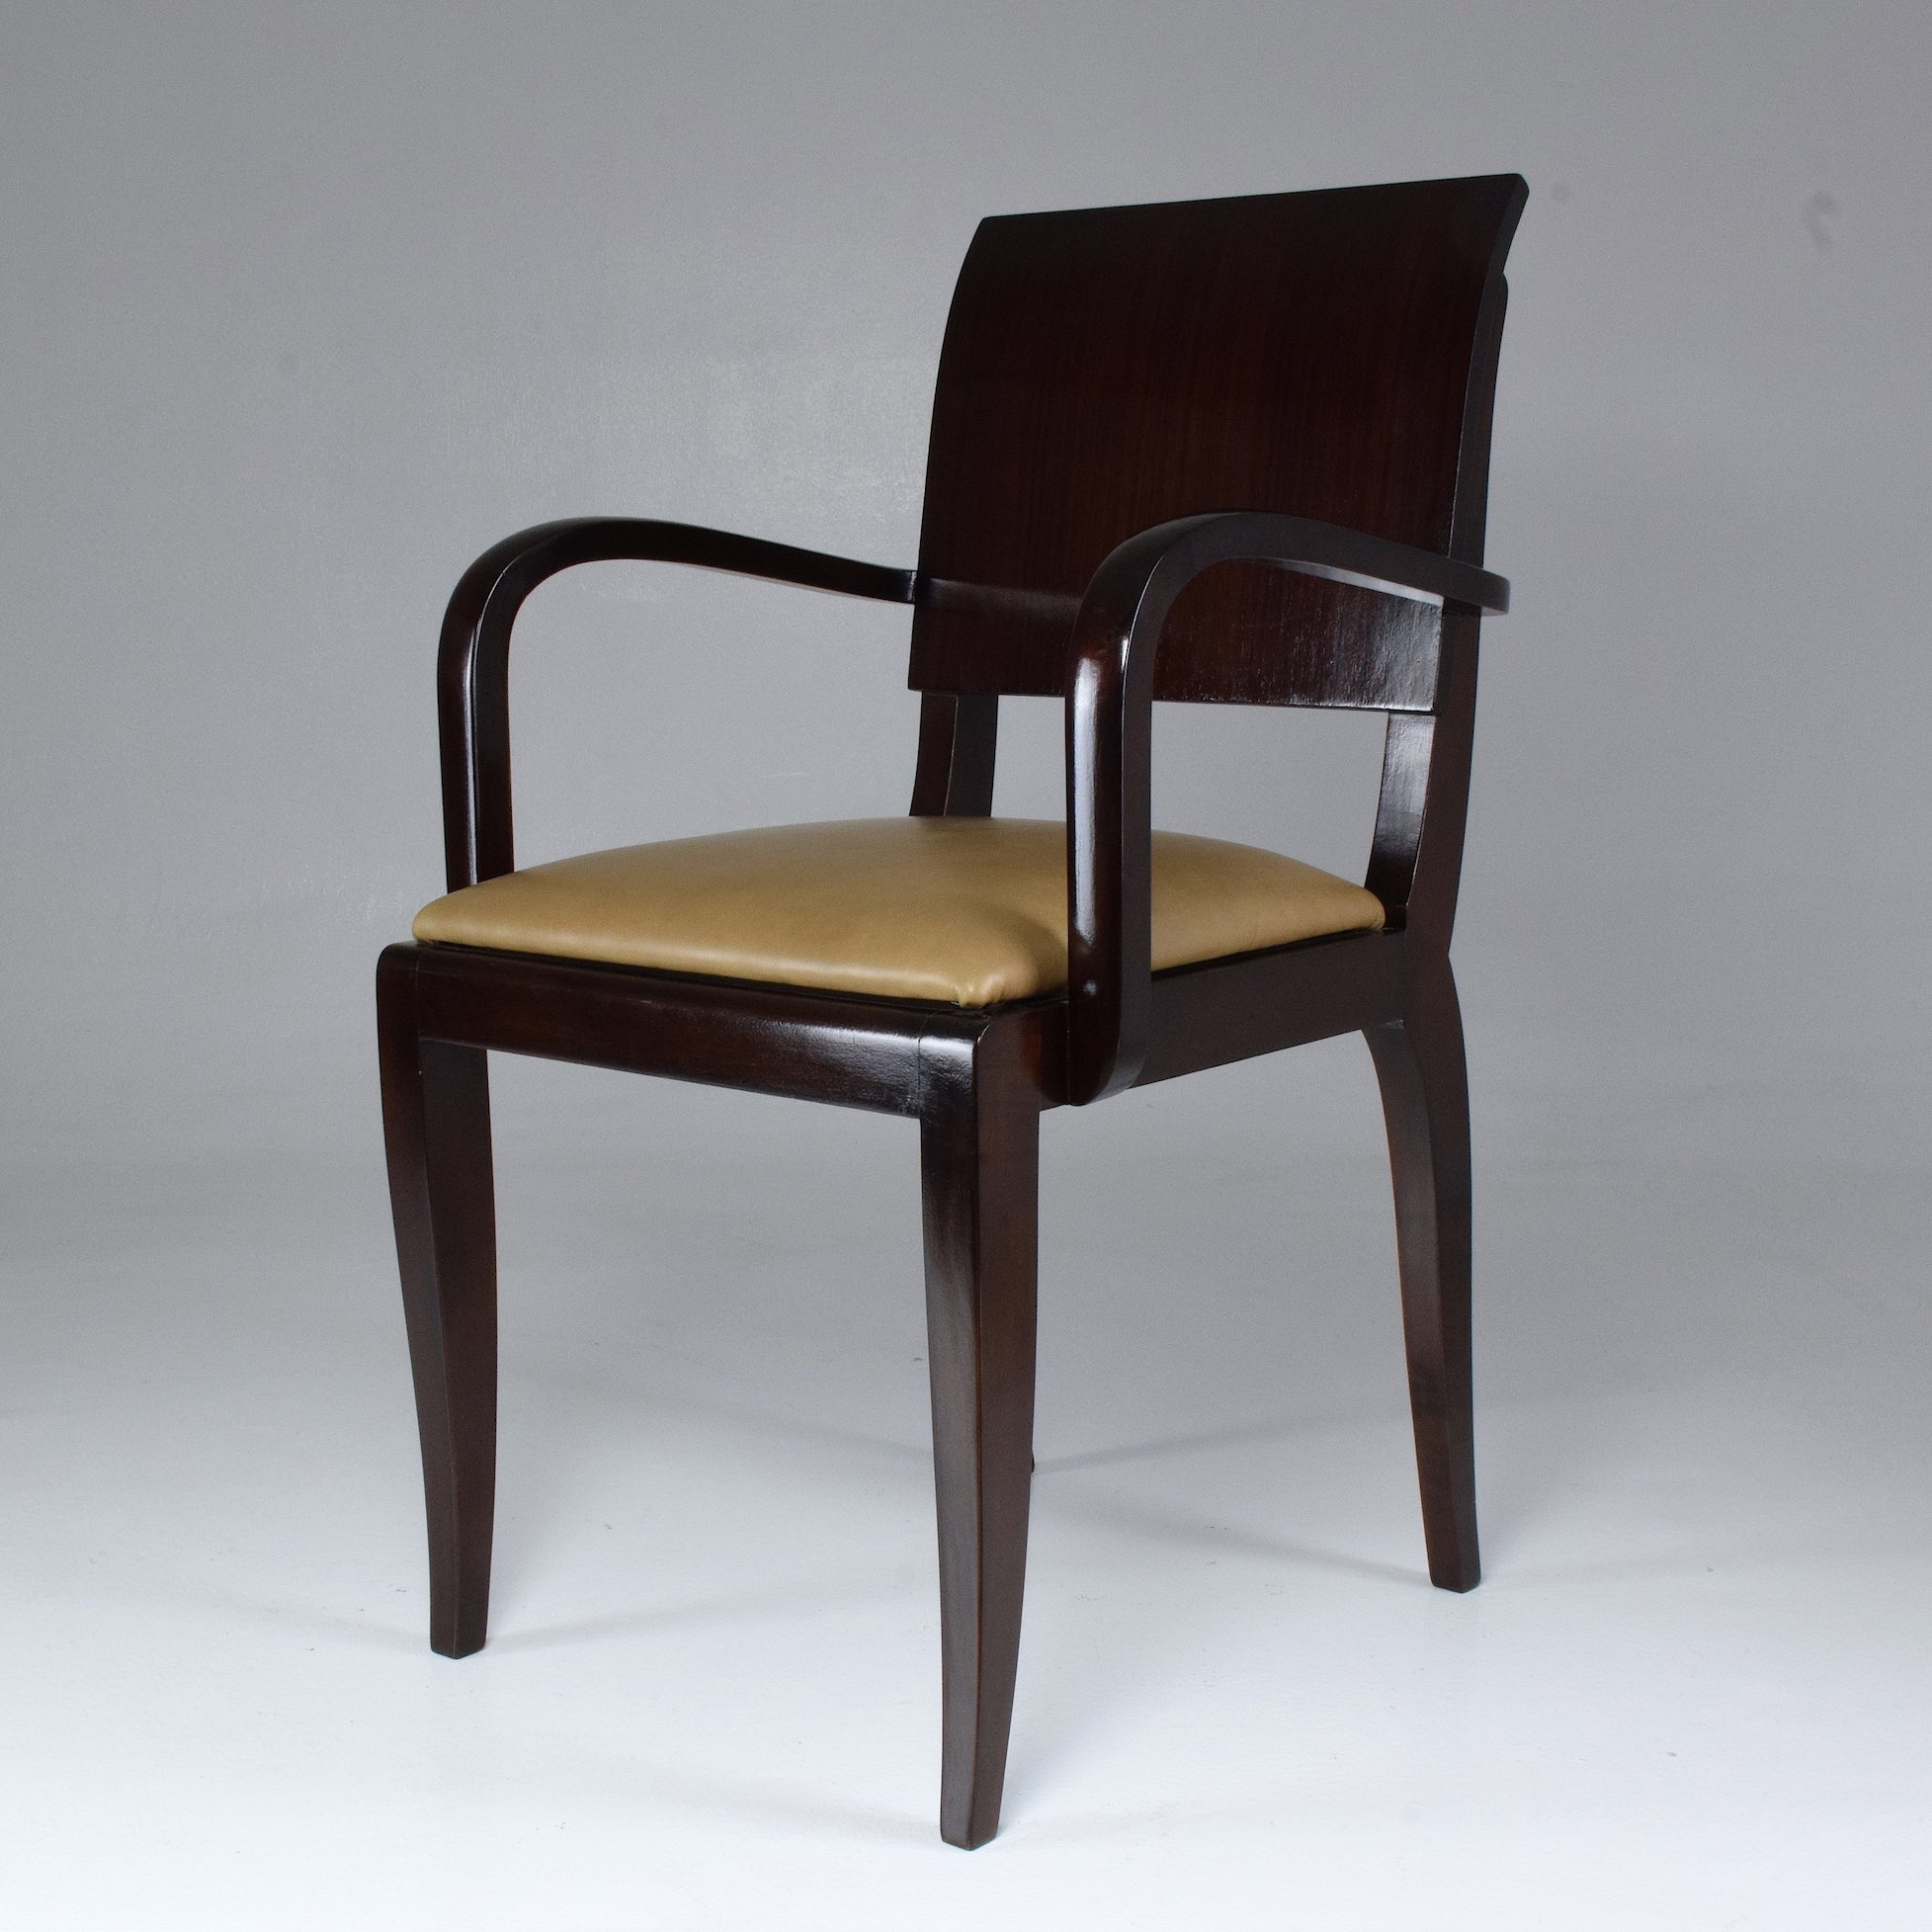 French Vintage Art Deco Chair 1940